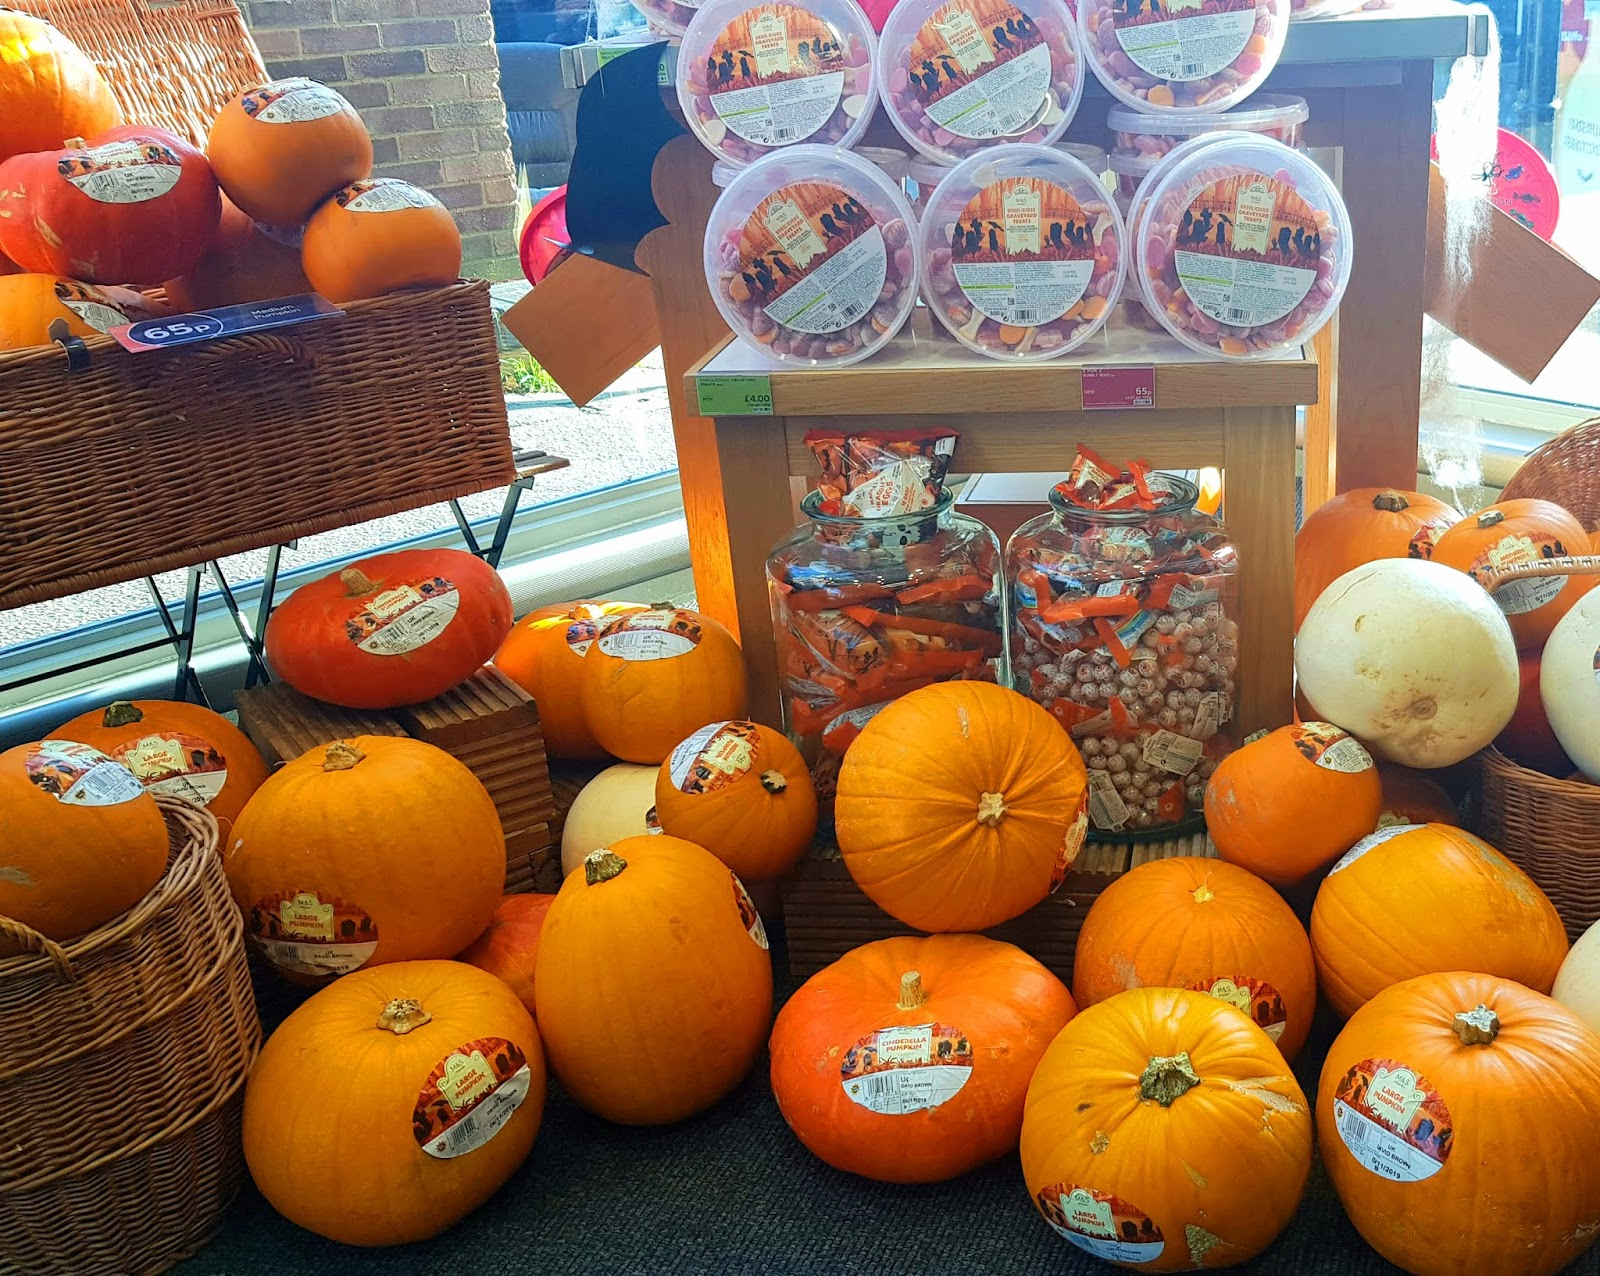 Pumpkin display for Halloween at Marks and Spencer, Epping, England